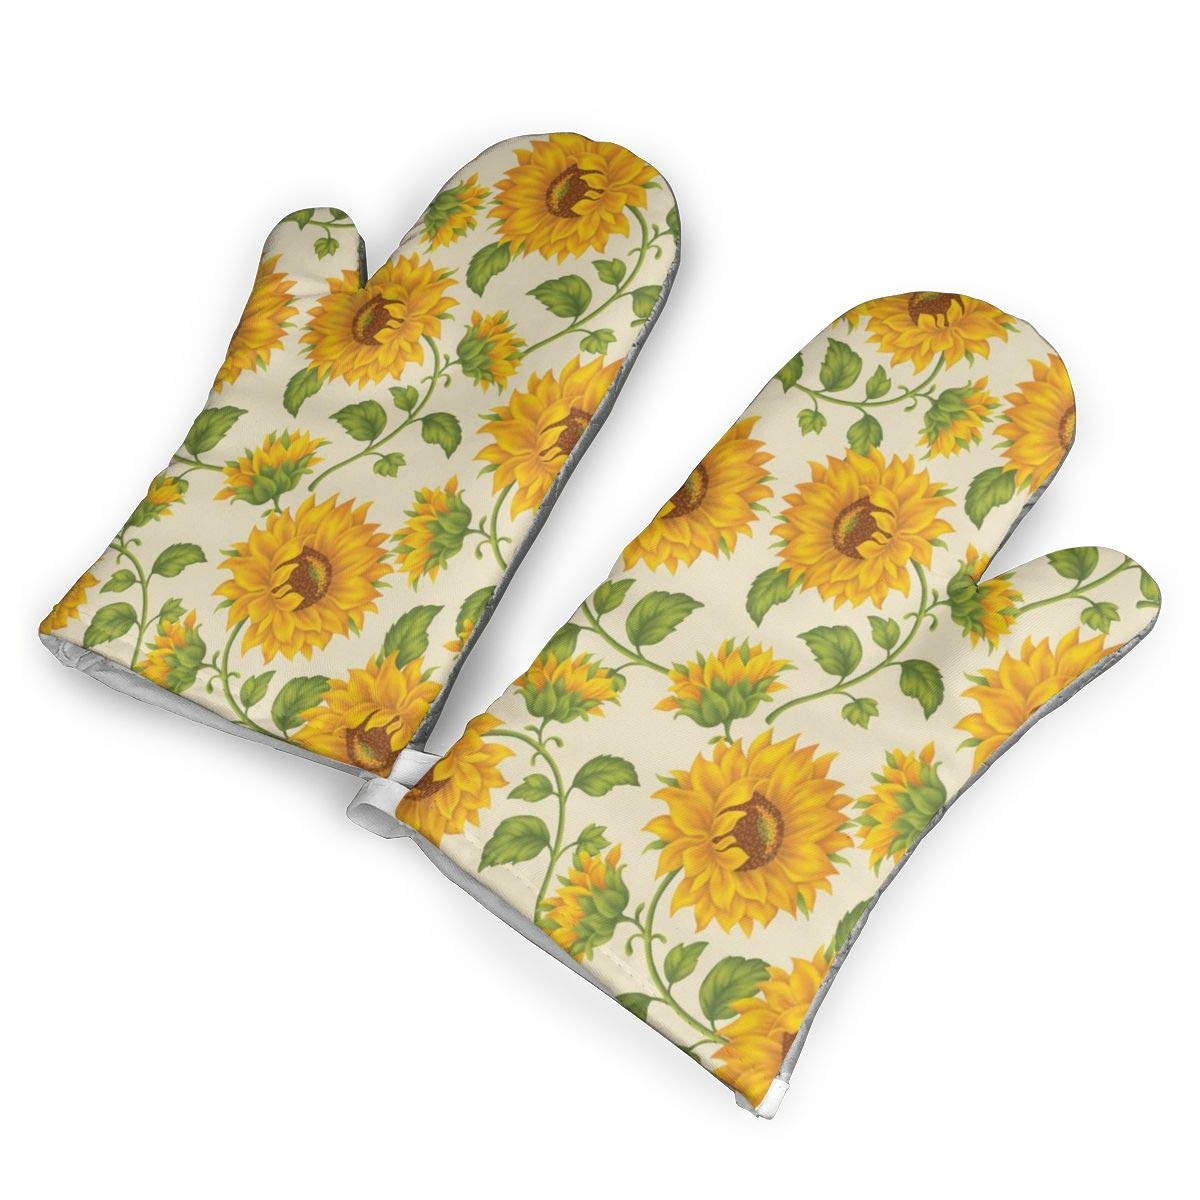 Feederm Sunflower Print Oven Mitts,Professional Heat Resistant Microwave Oven Insulation Thickening Gloves Baking Pot Mittens Soft Inner Lining Kitchen Cooking